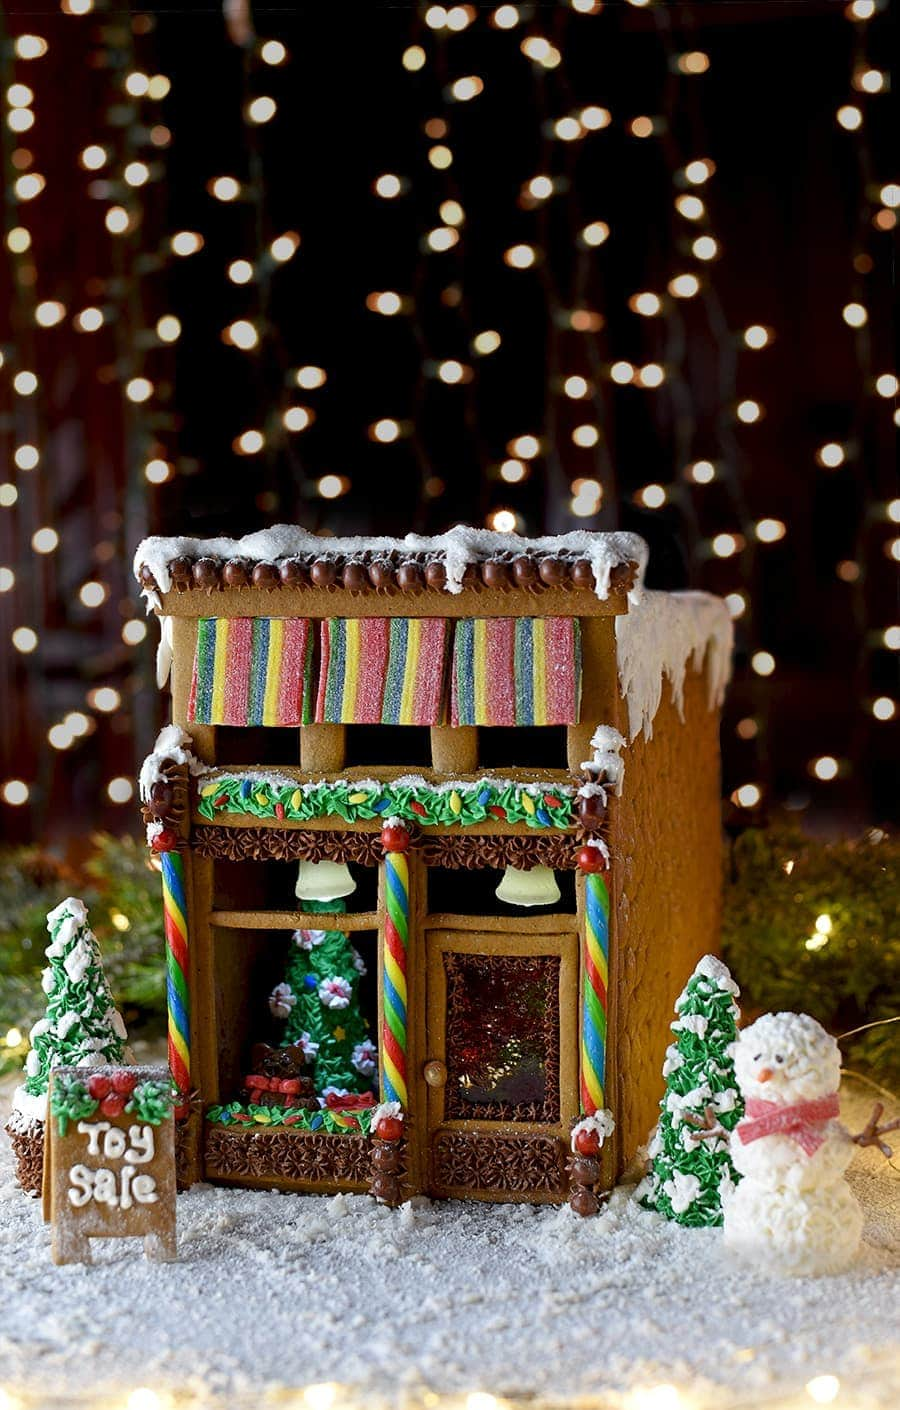 Gingerbread House 7083 Web - Victorian Storefront Gingerbread House Template